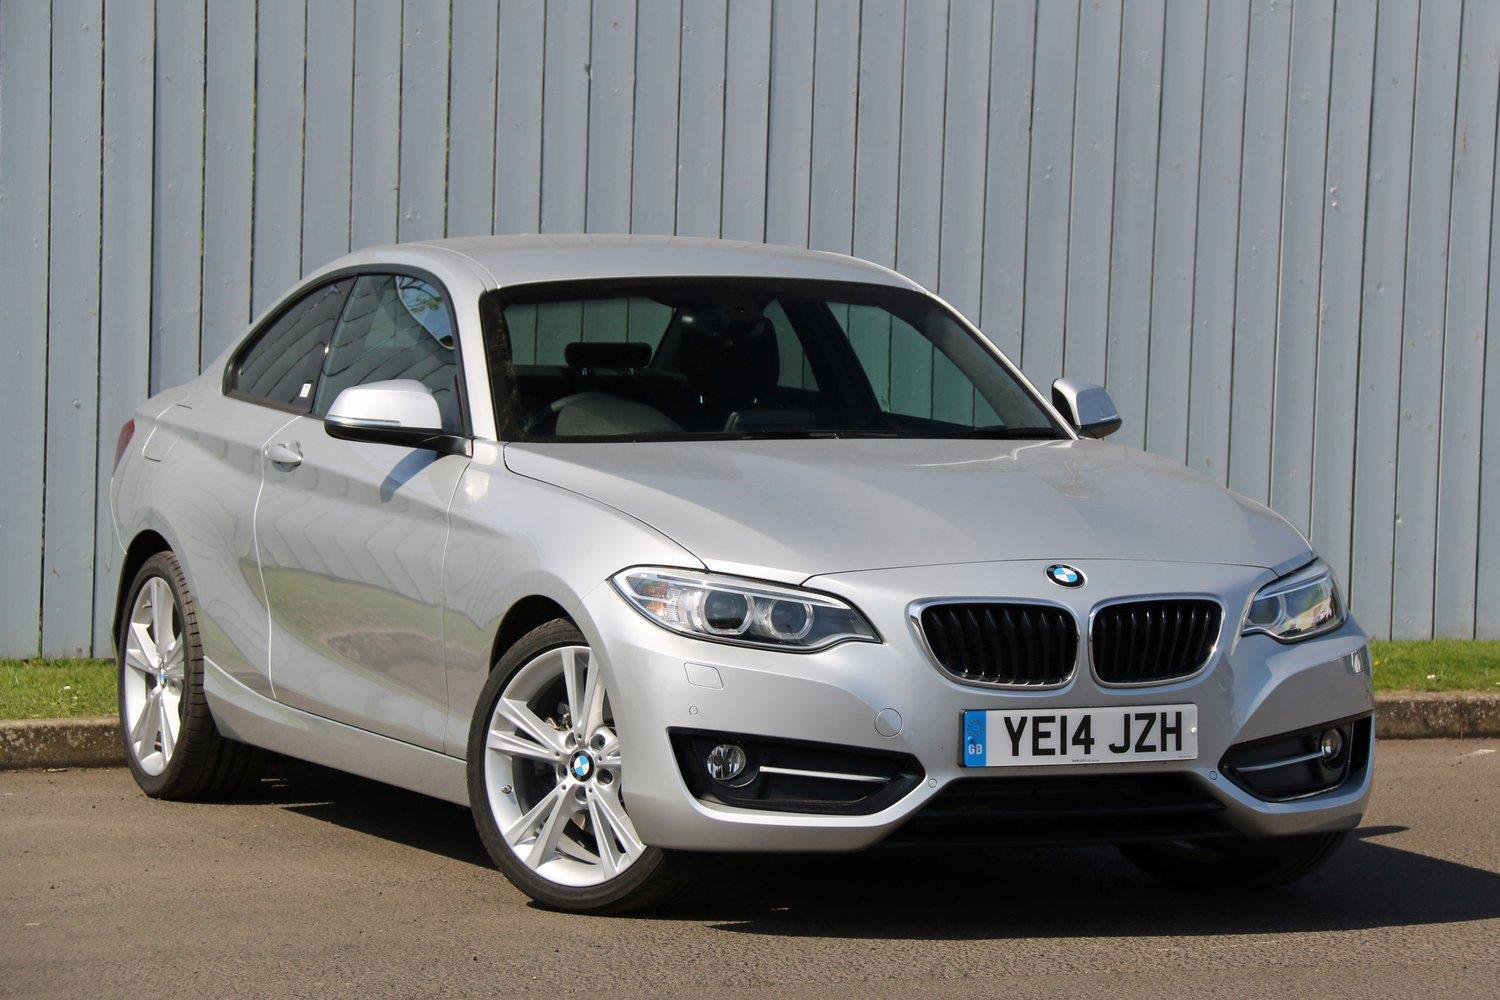 BMW 2 Series Coupé YE14JZH - Image 2